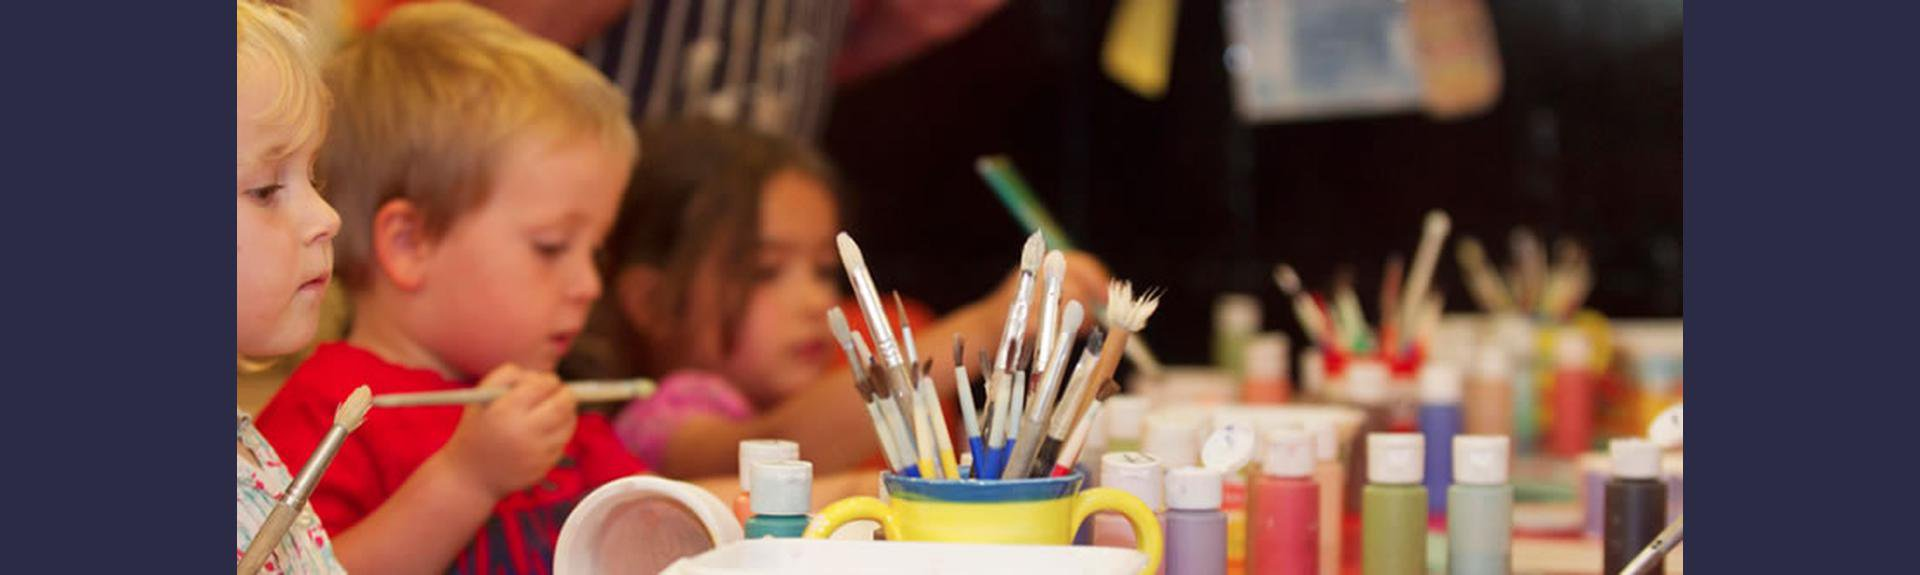 Kids Party Entertainment| Melt Ceramics| Things to do with kids| Durbanville